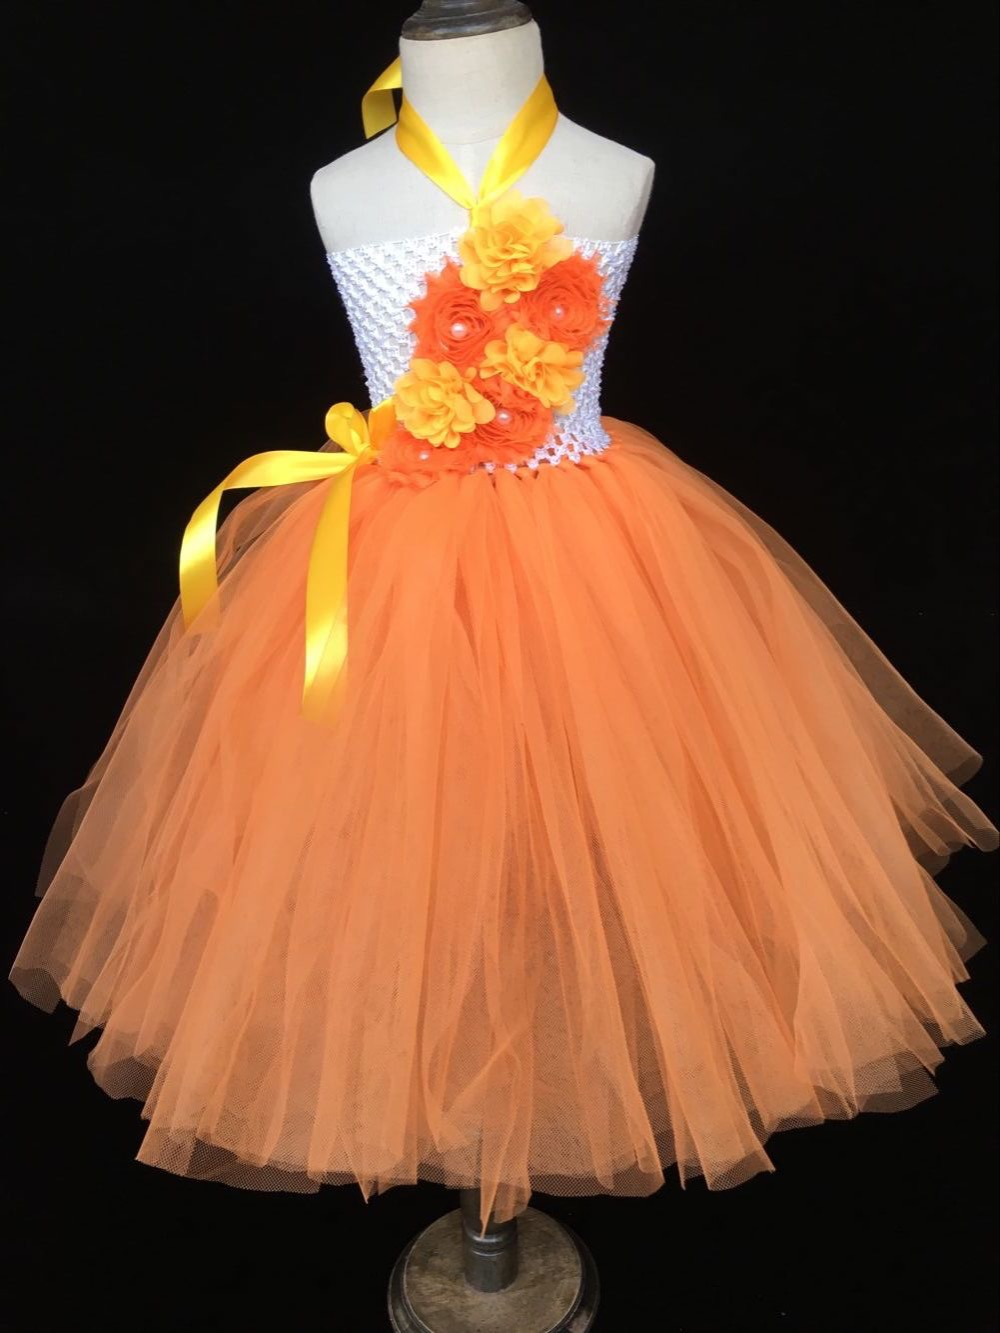 52f2f0f563c6c Baby Girls Orange Flower Tutu Dress Kids Crochet Tulle Dress Ball Gown with  Ribbon Bow and Headband Children Wedding Party Dress